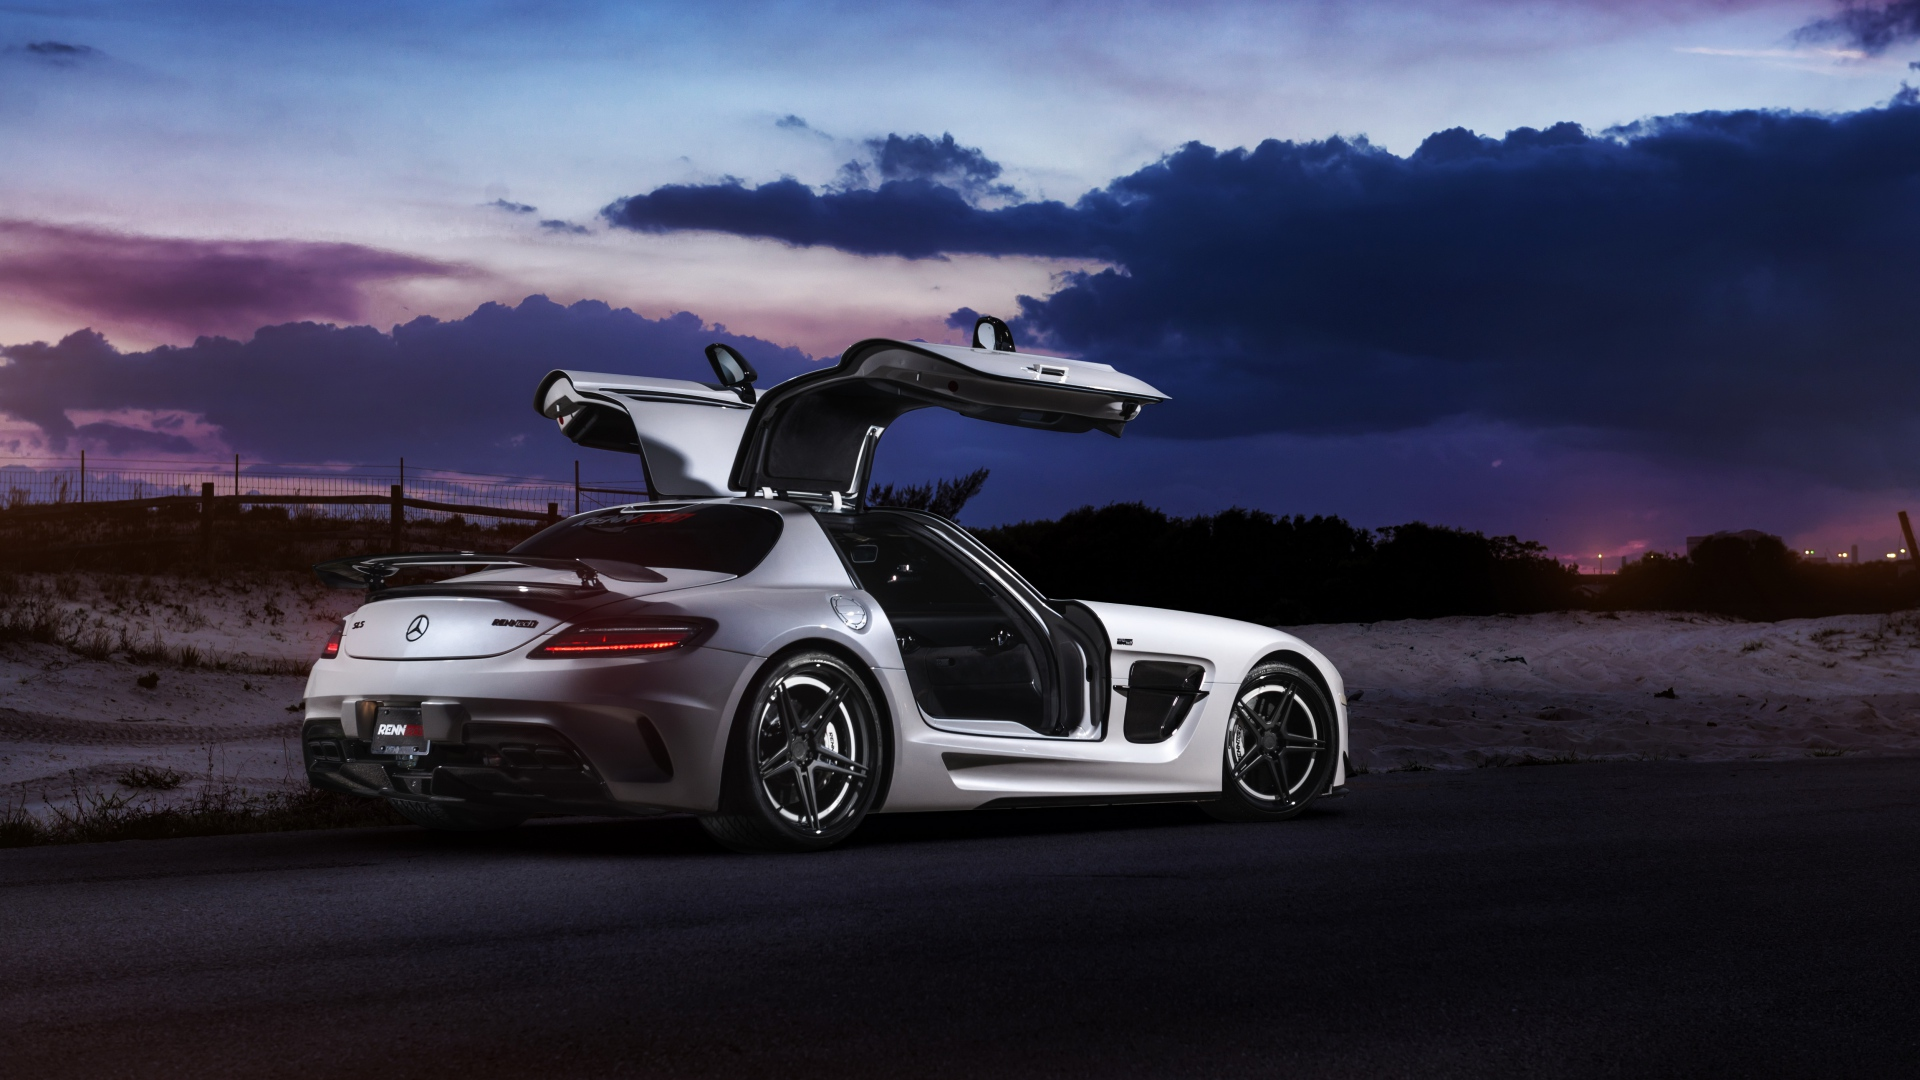 Mercedes Benz Images Mercedes Benz Sls Amg Renntech Tuning Night